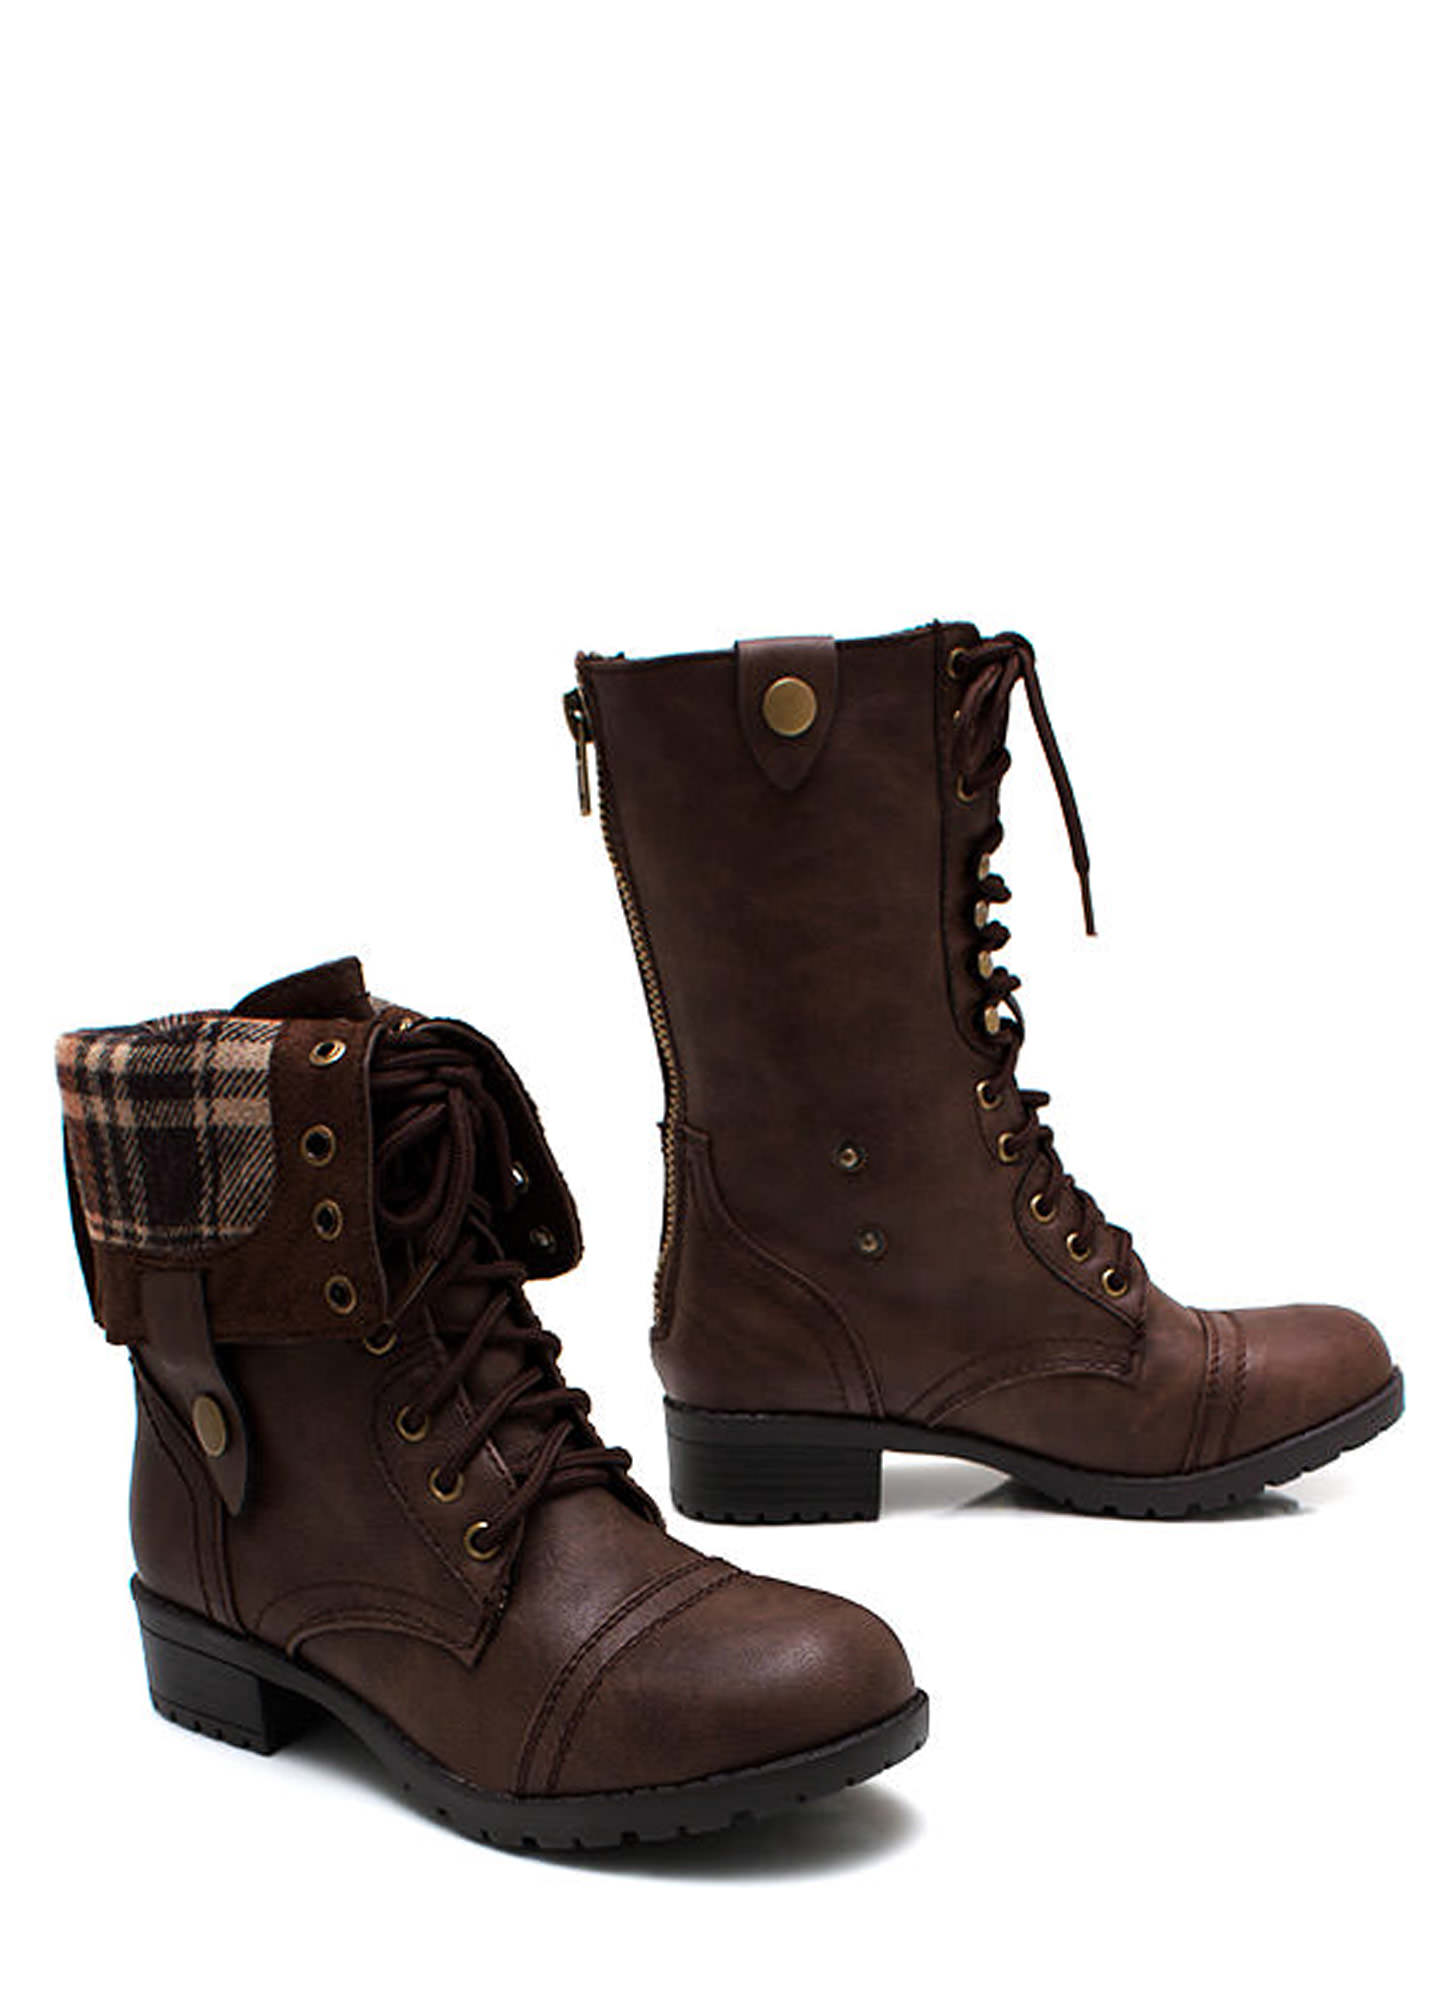 brown combat boots with popular inspiration